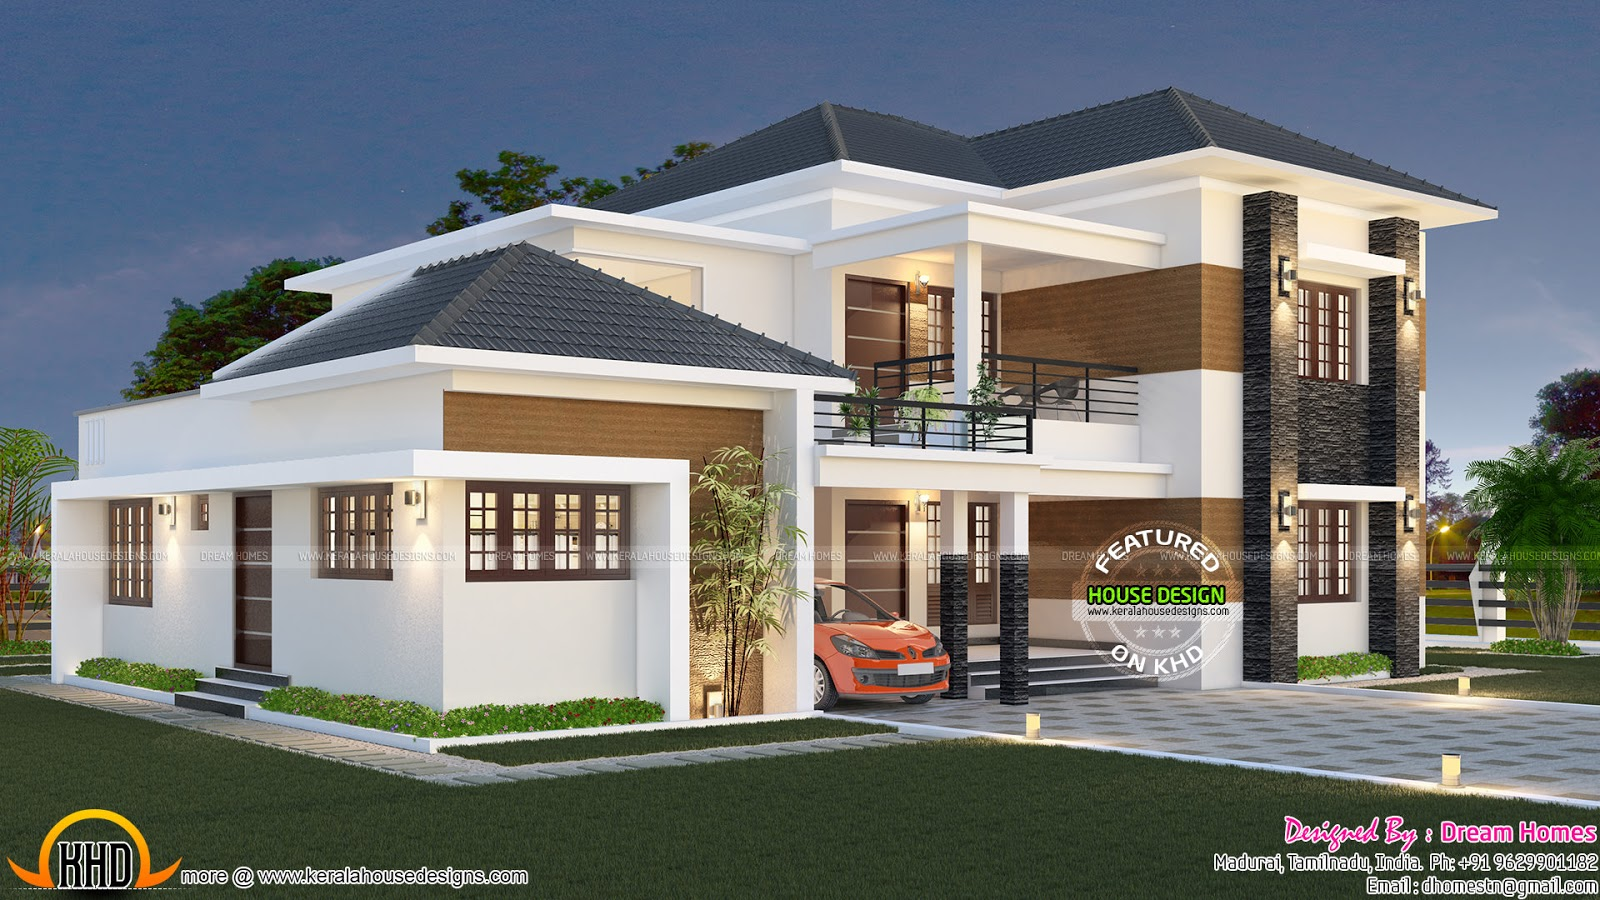 Elegant south indian villa kerala home design and floor plans Modern dream home design ideas